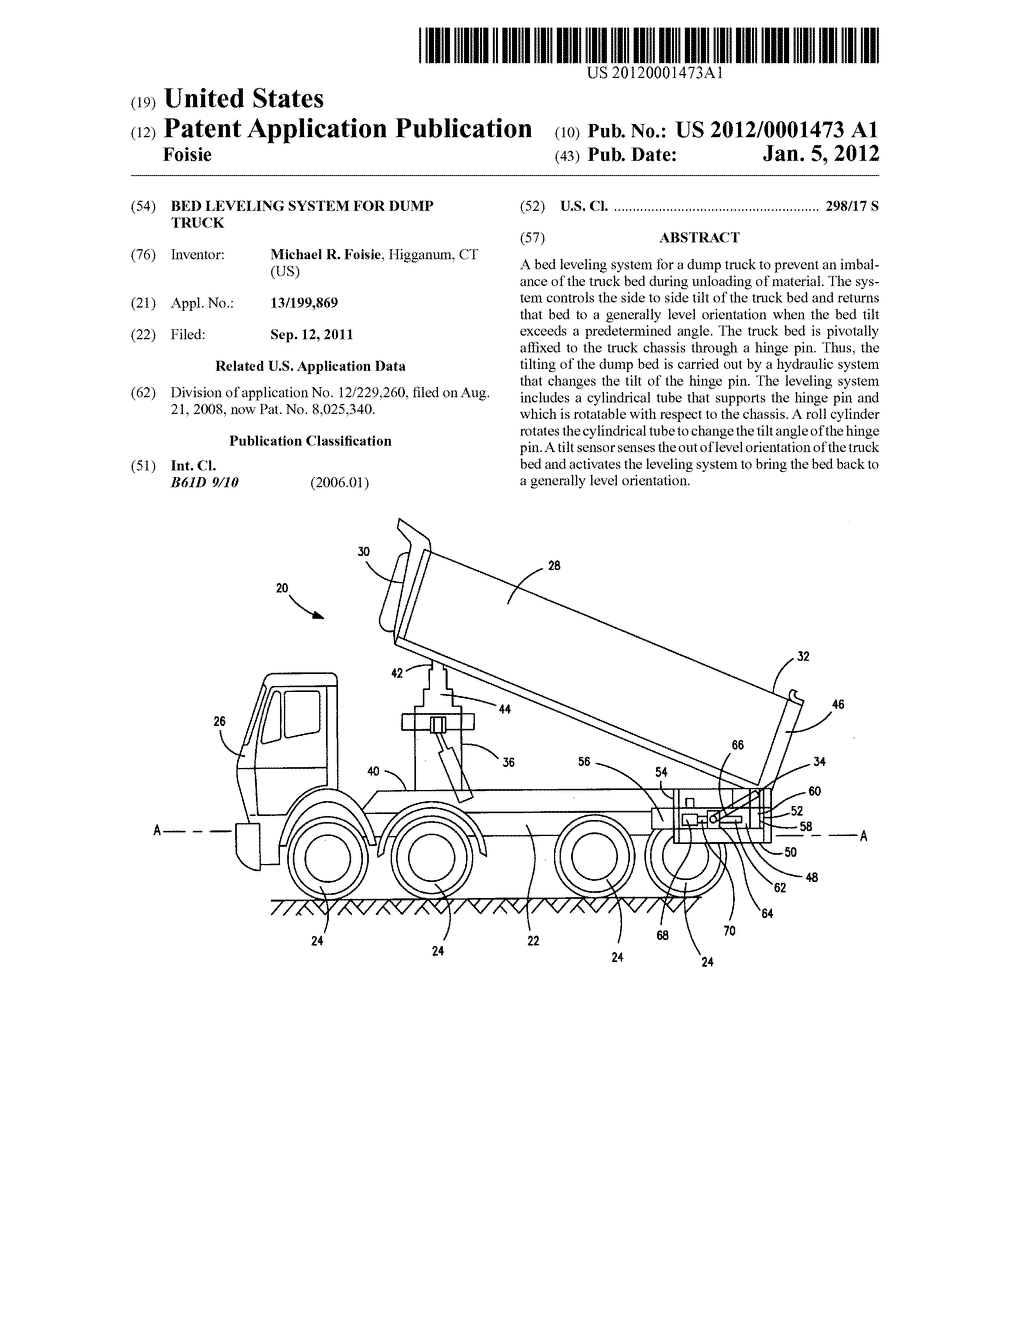 hight resolution of bed leveling system for dump truck diagram schematic and image 01 rh patentsencyclopedia com dump bed switch dump bed trailer